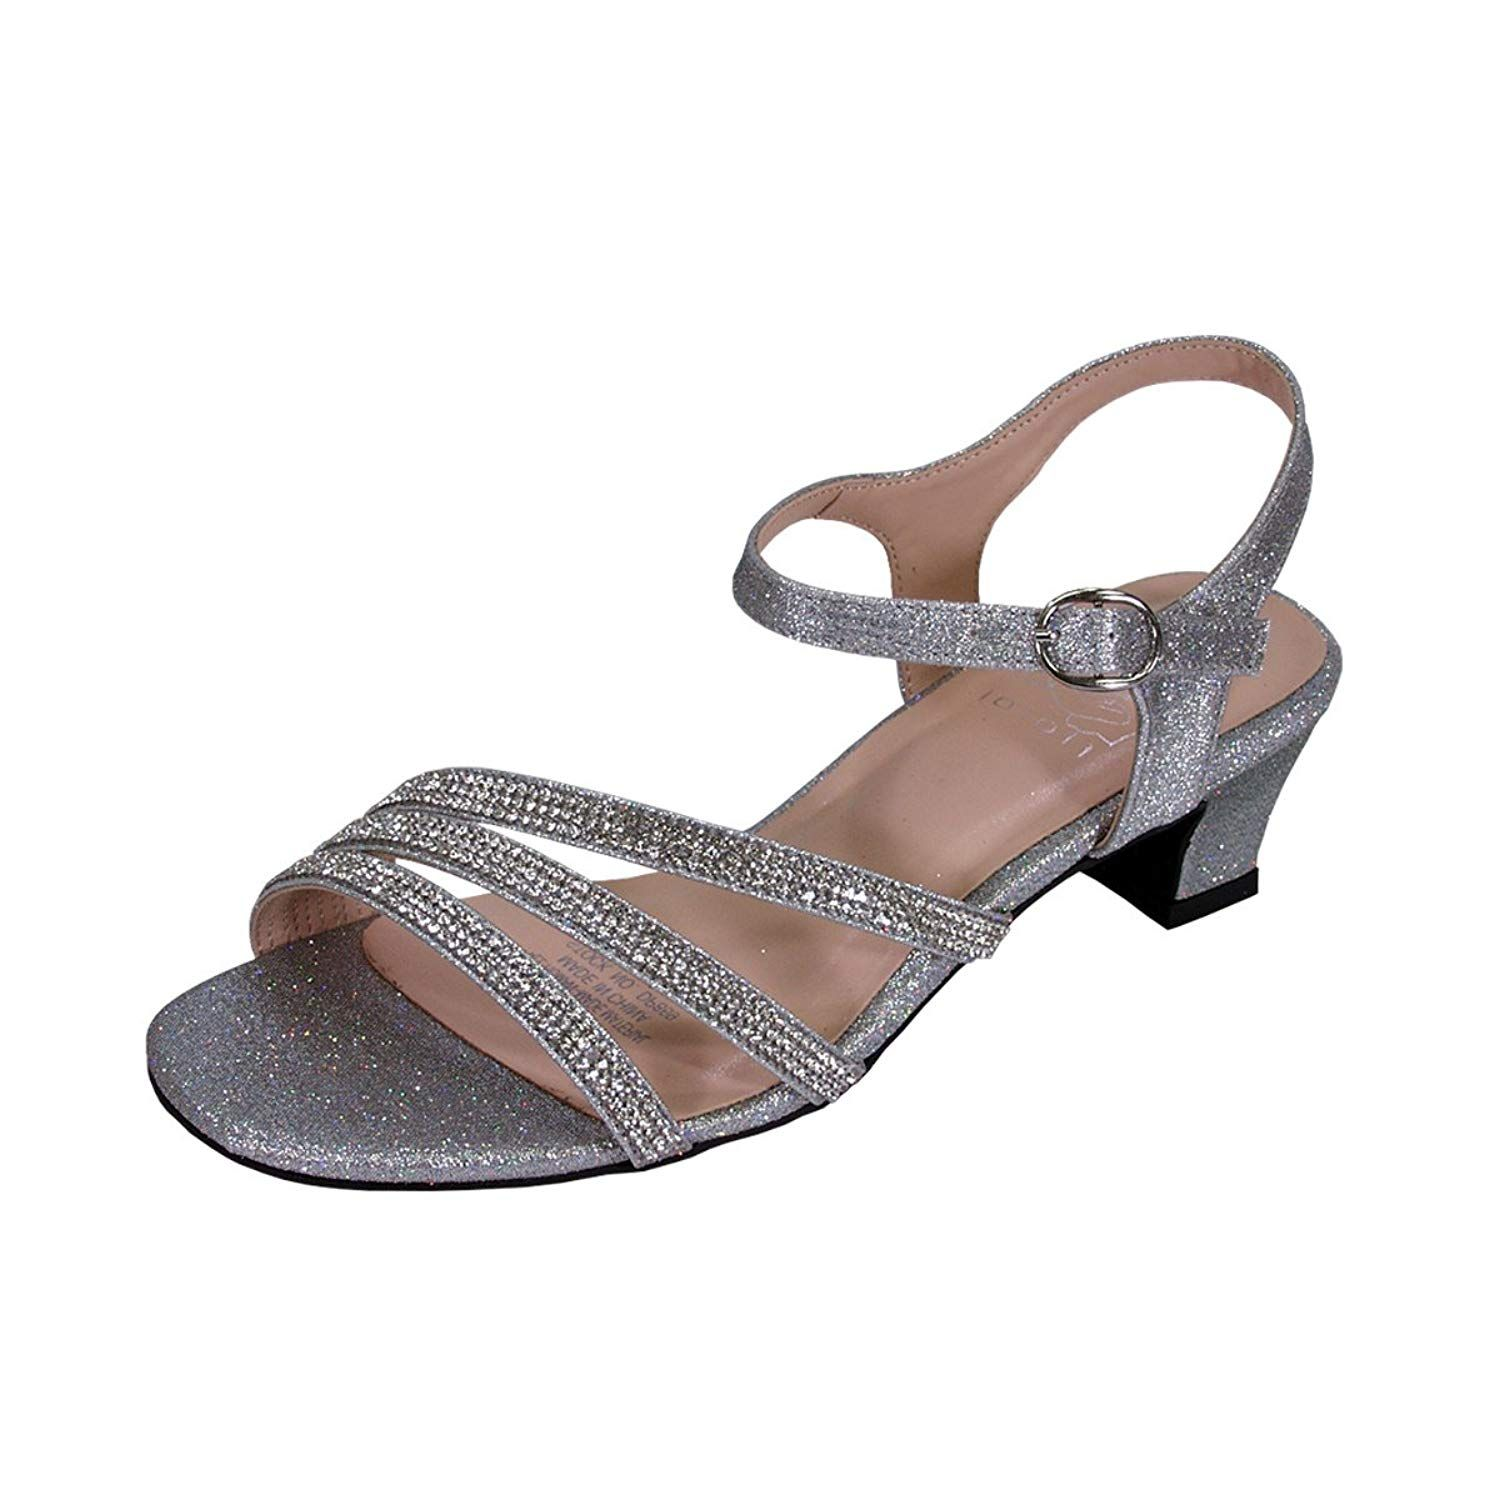 Pin on Floral Shoes for Women